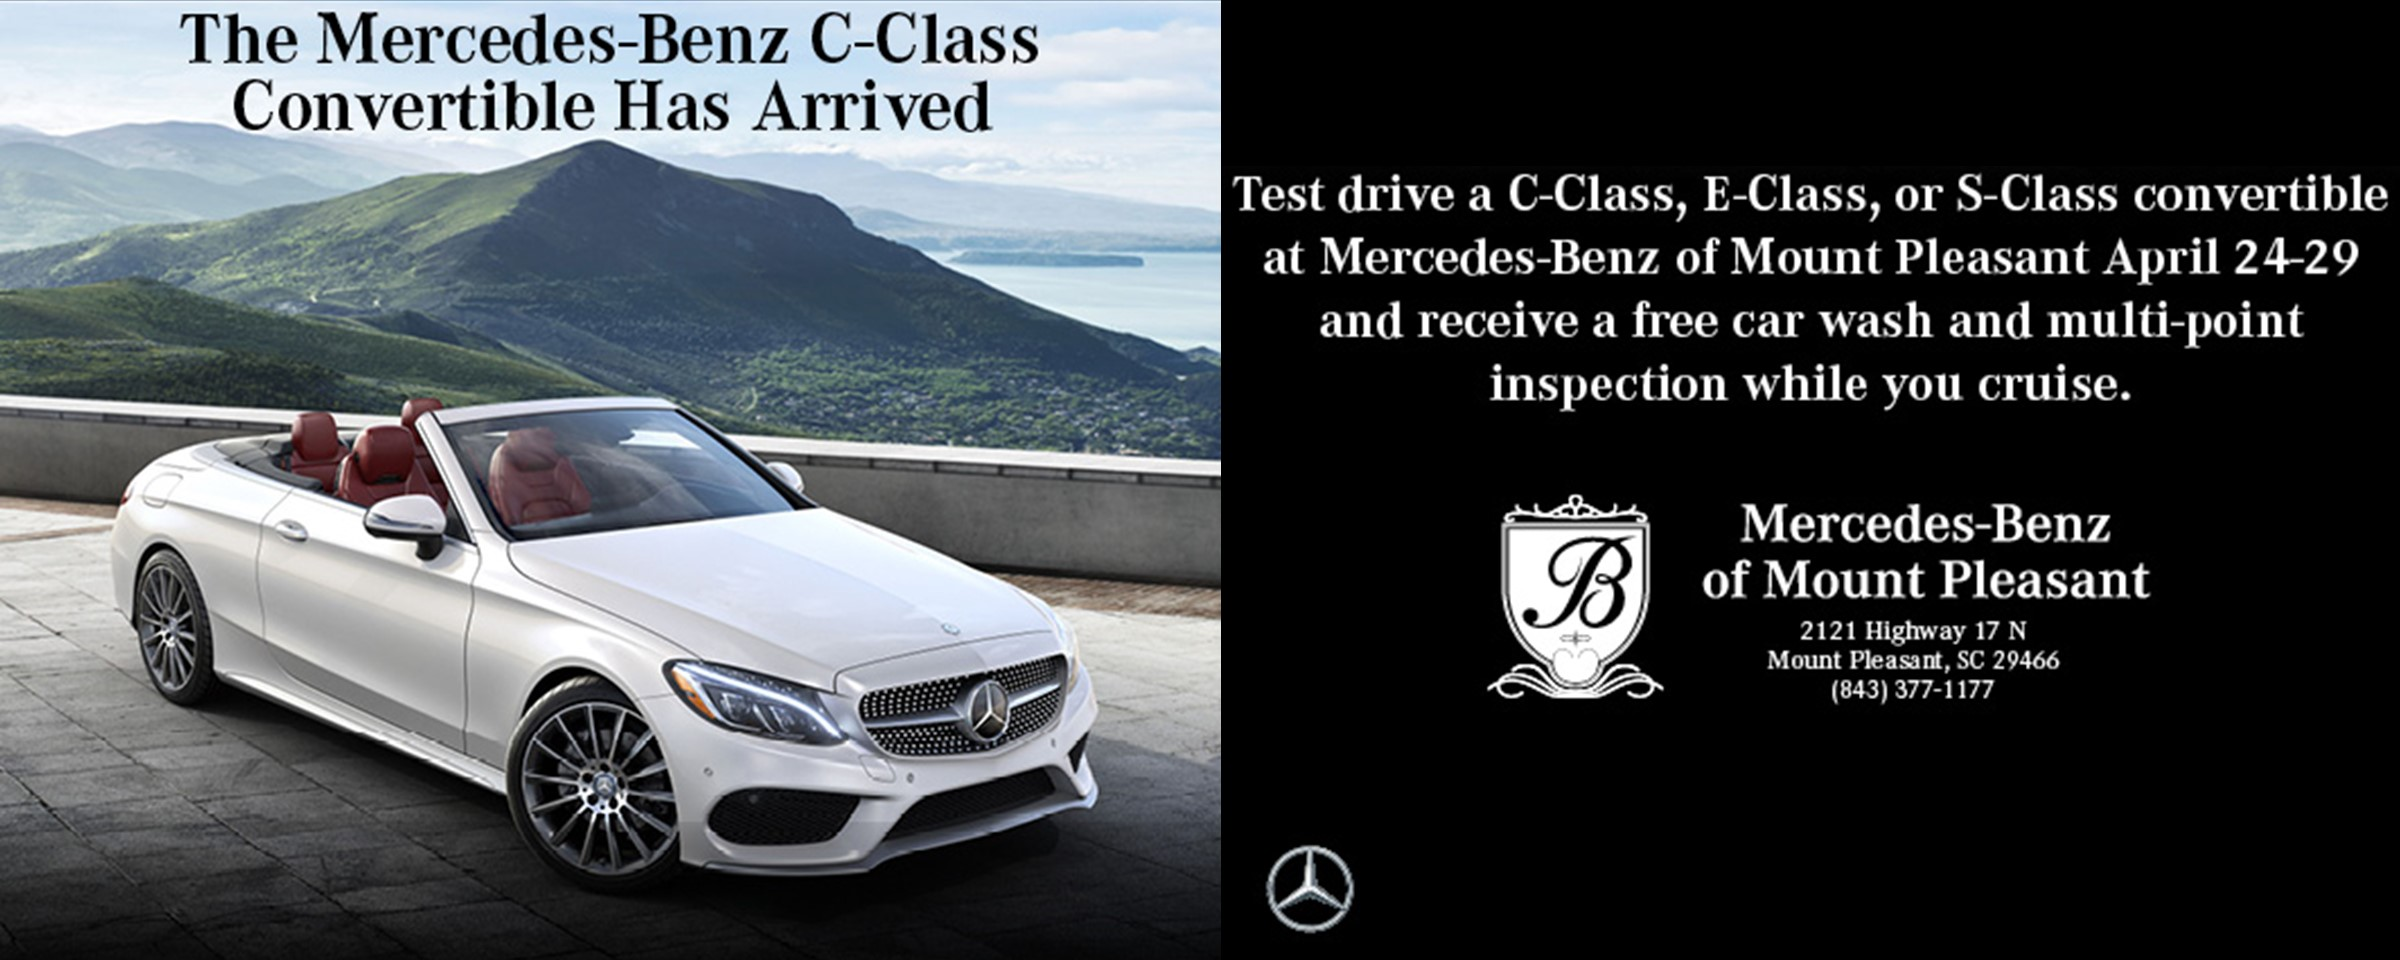 The c class convertible has arrived at mercedes benz of for Mercedes benz car wash free